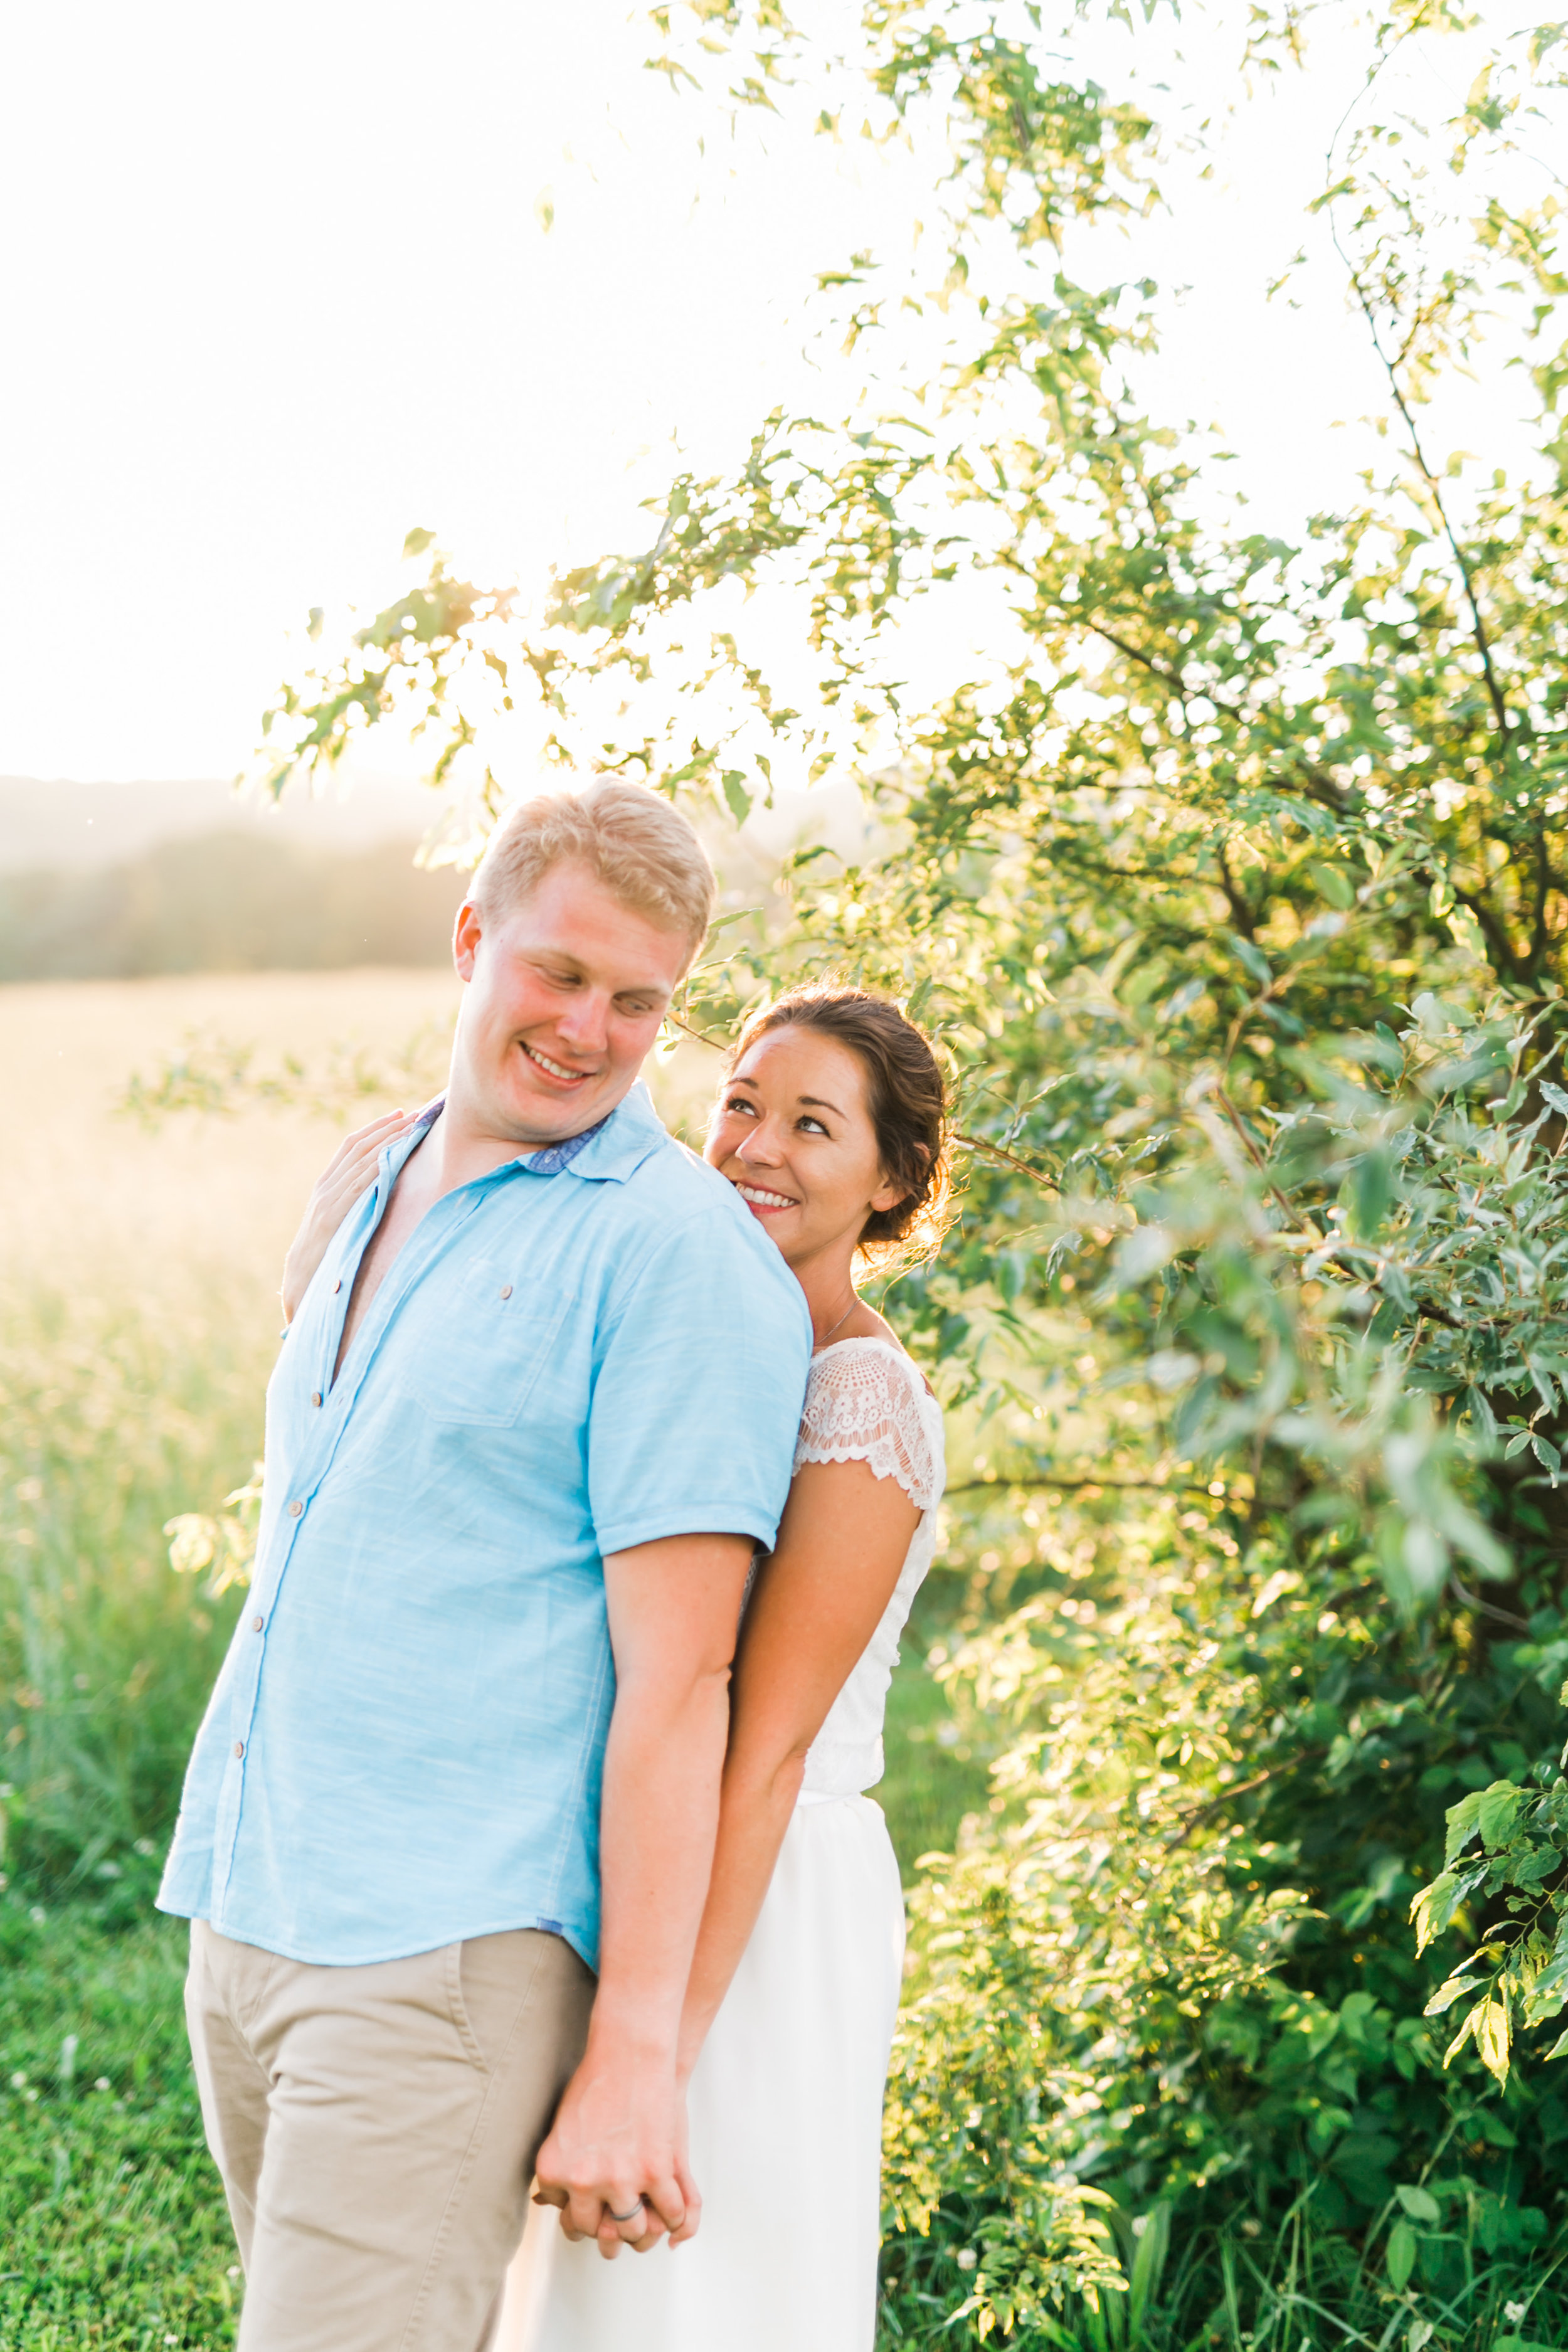 wedding day joyful relaxed diy couple smiling knoxville wedding